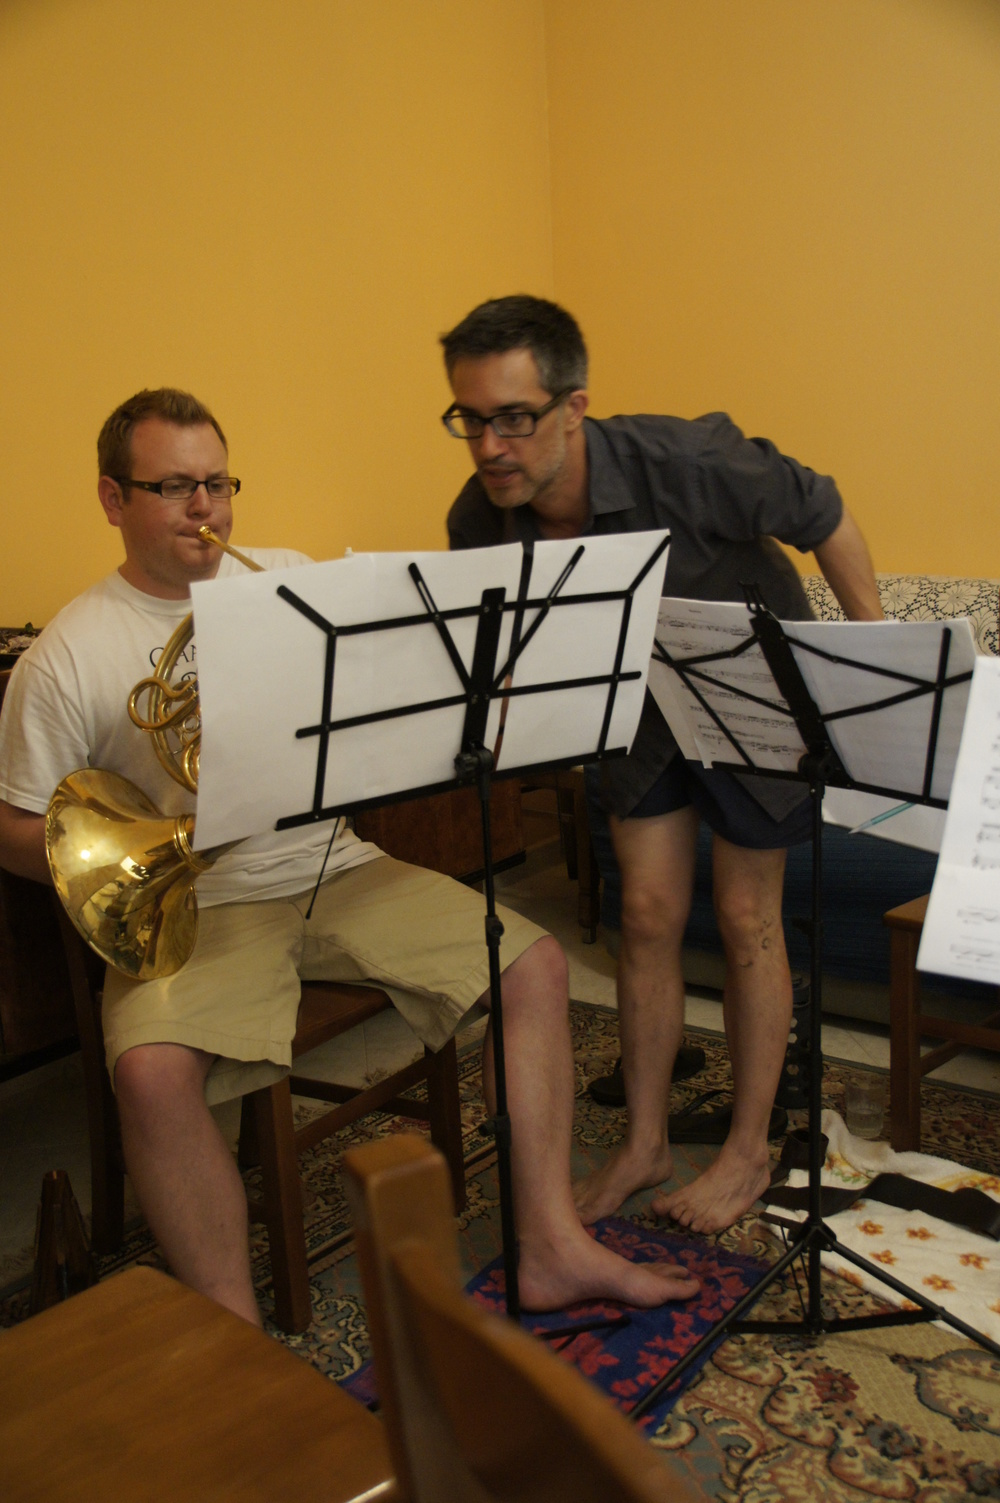 Collaborating with composer Libero Mureddu